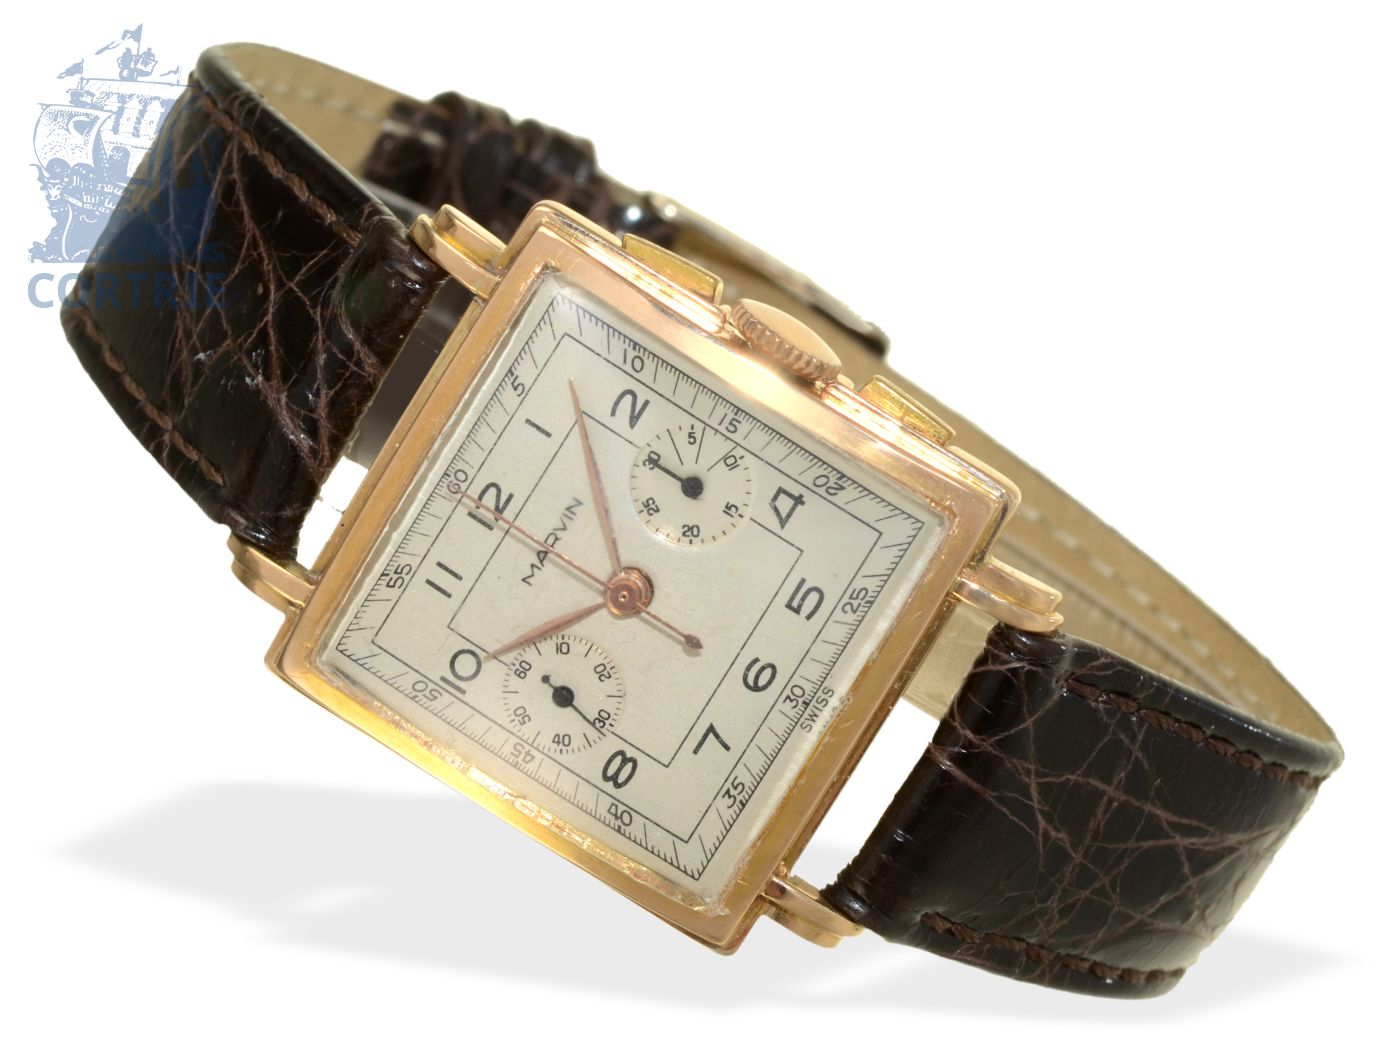 Wristwatch: extremely rare 18 K gold chronograph with square case, Marvin ca. 1940-